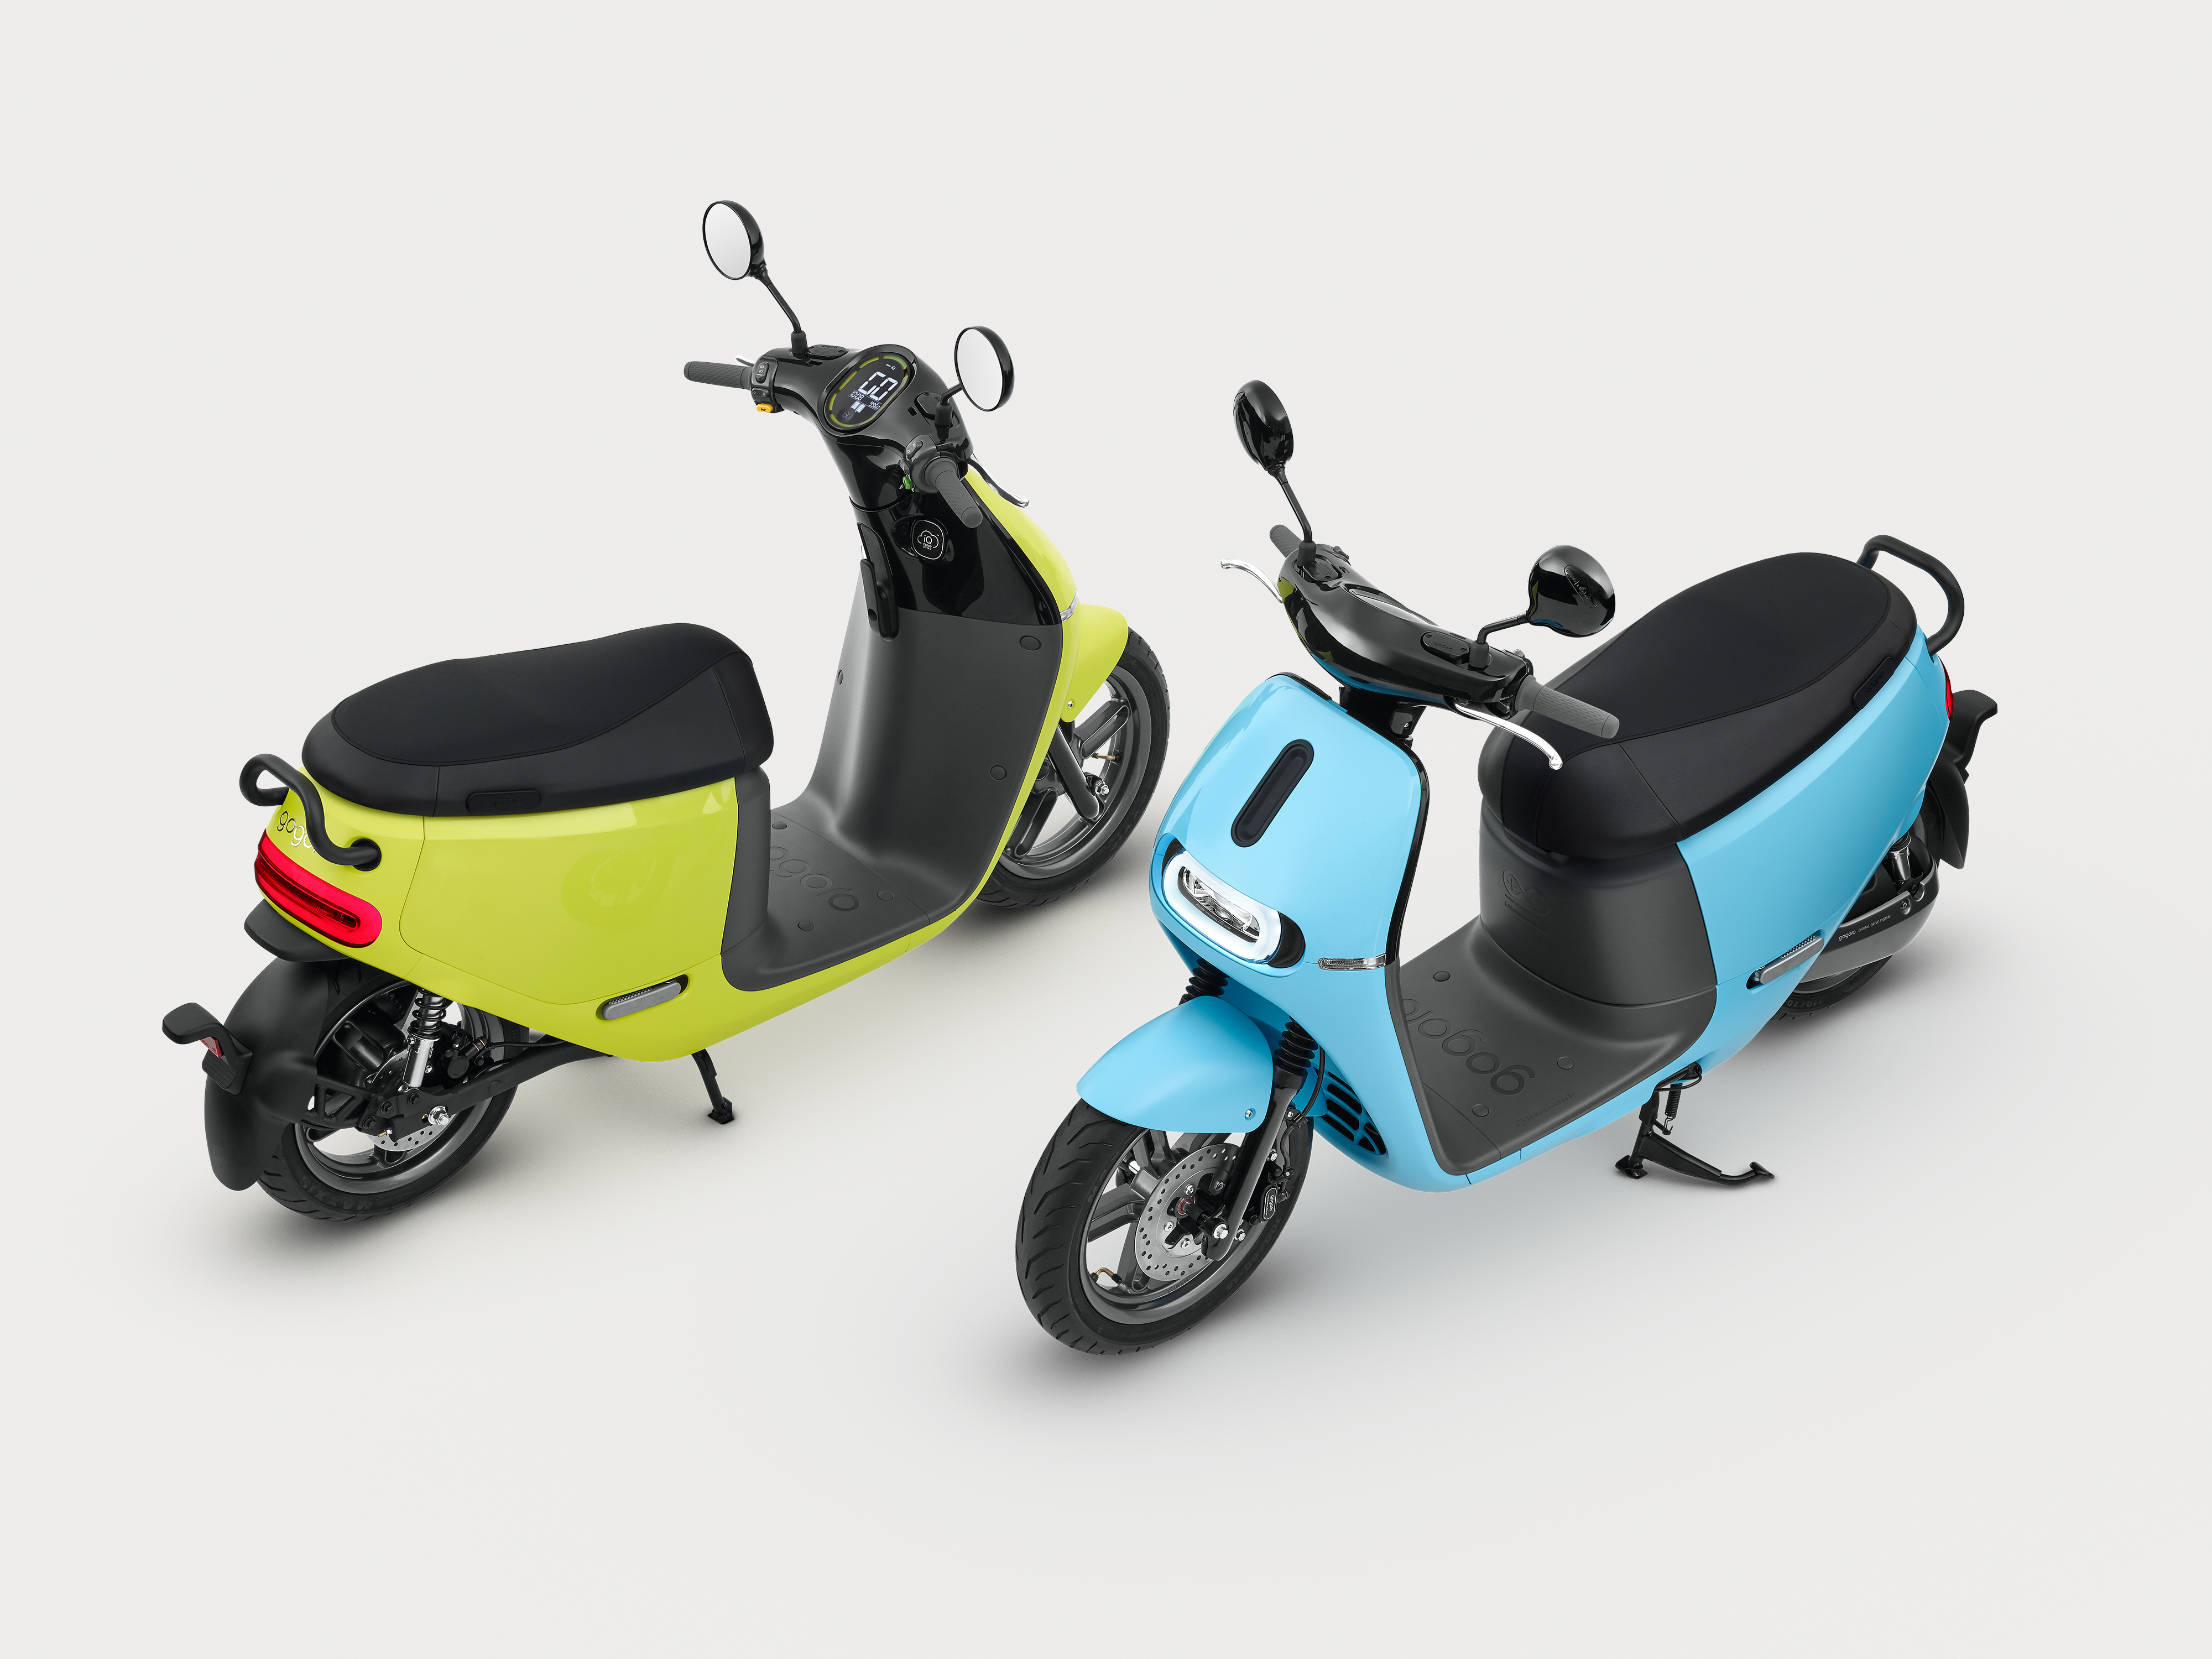 Gogoro's colorful new electric scooter is twice as cheap but